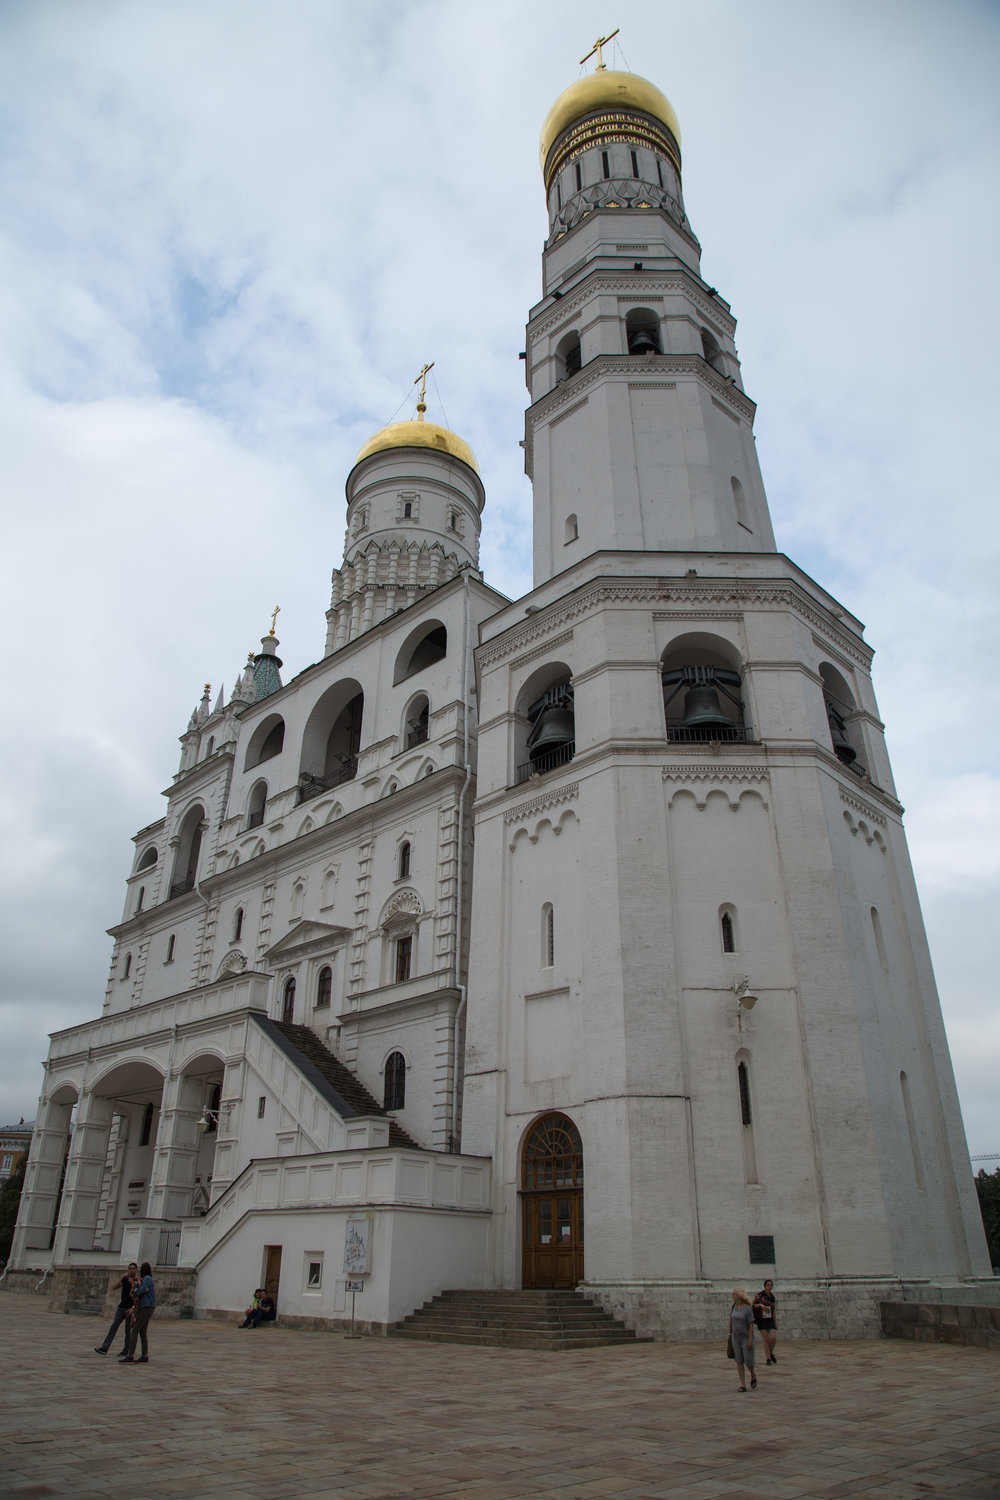 One of the churches found inside the Kremlin.